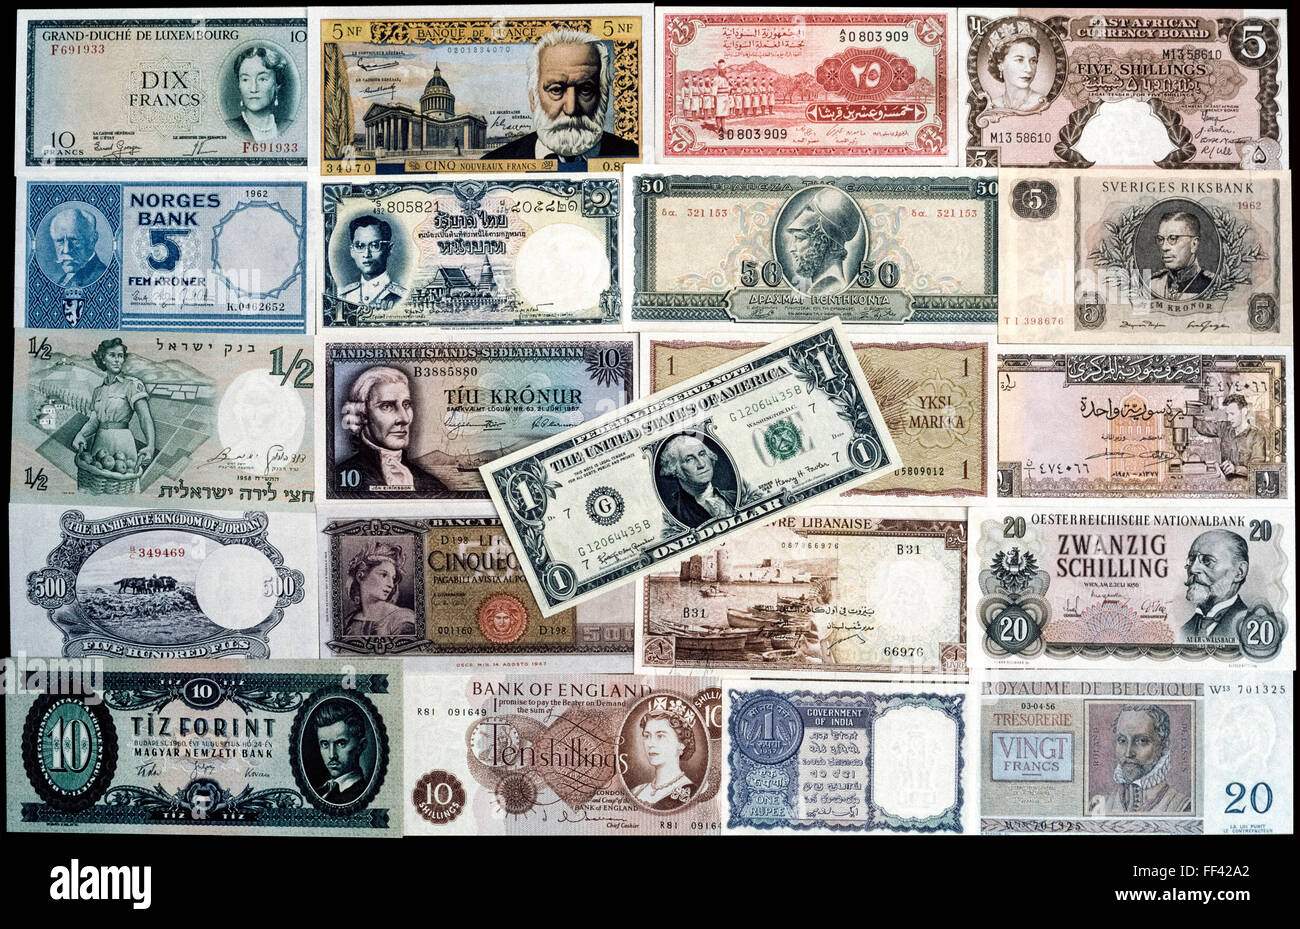 A collection of brand-new banknotes from 21 countries that were in circulation in the early 1960s. The colorful Stock Photo